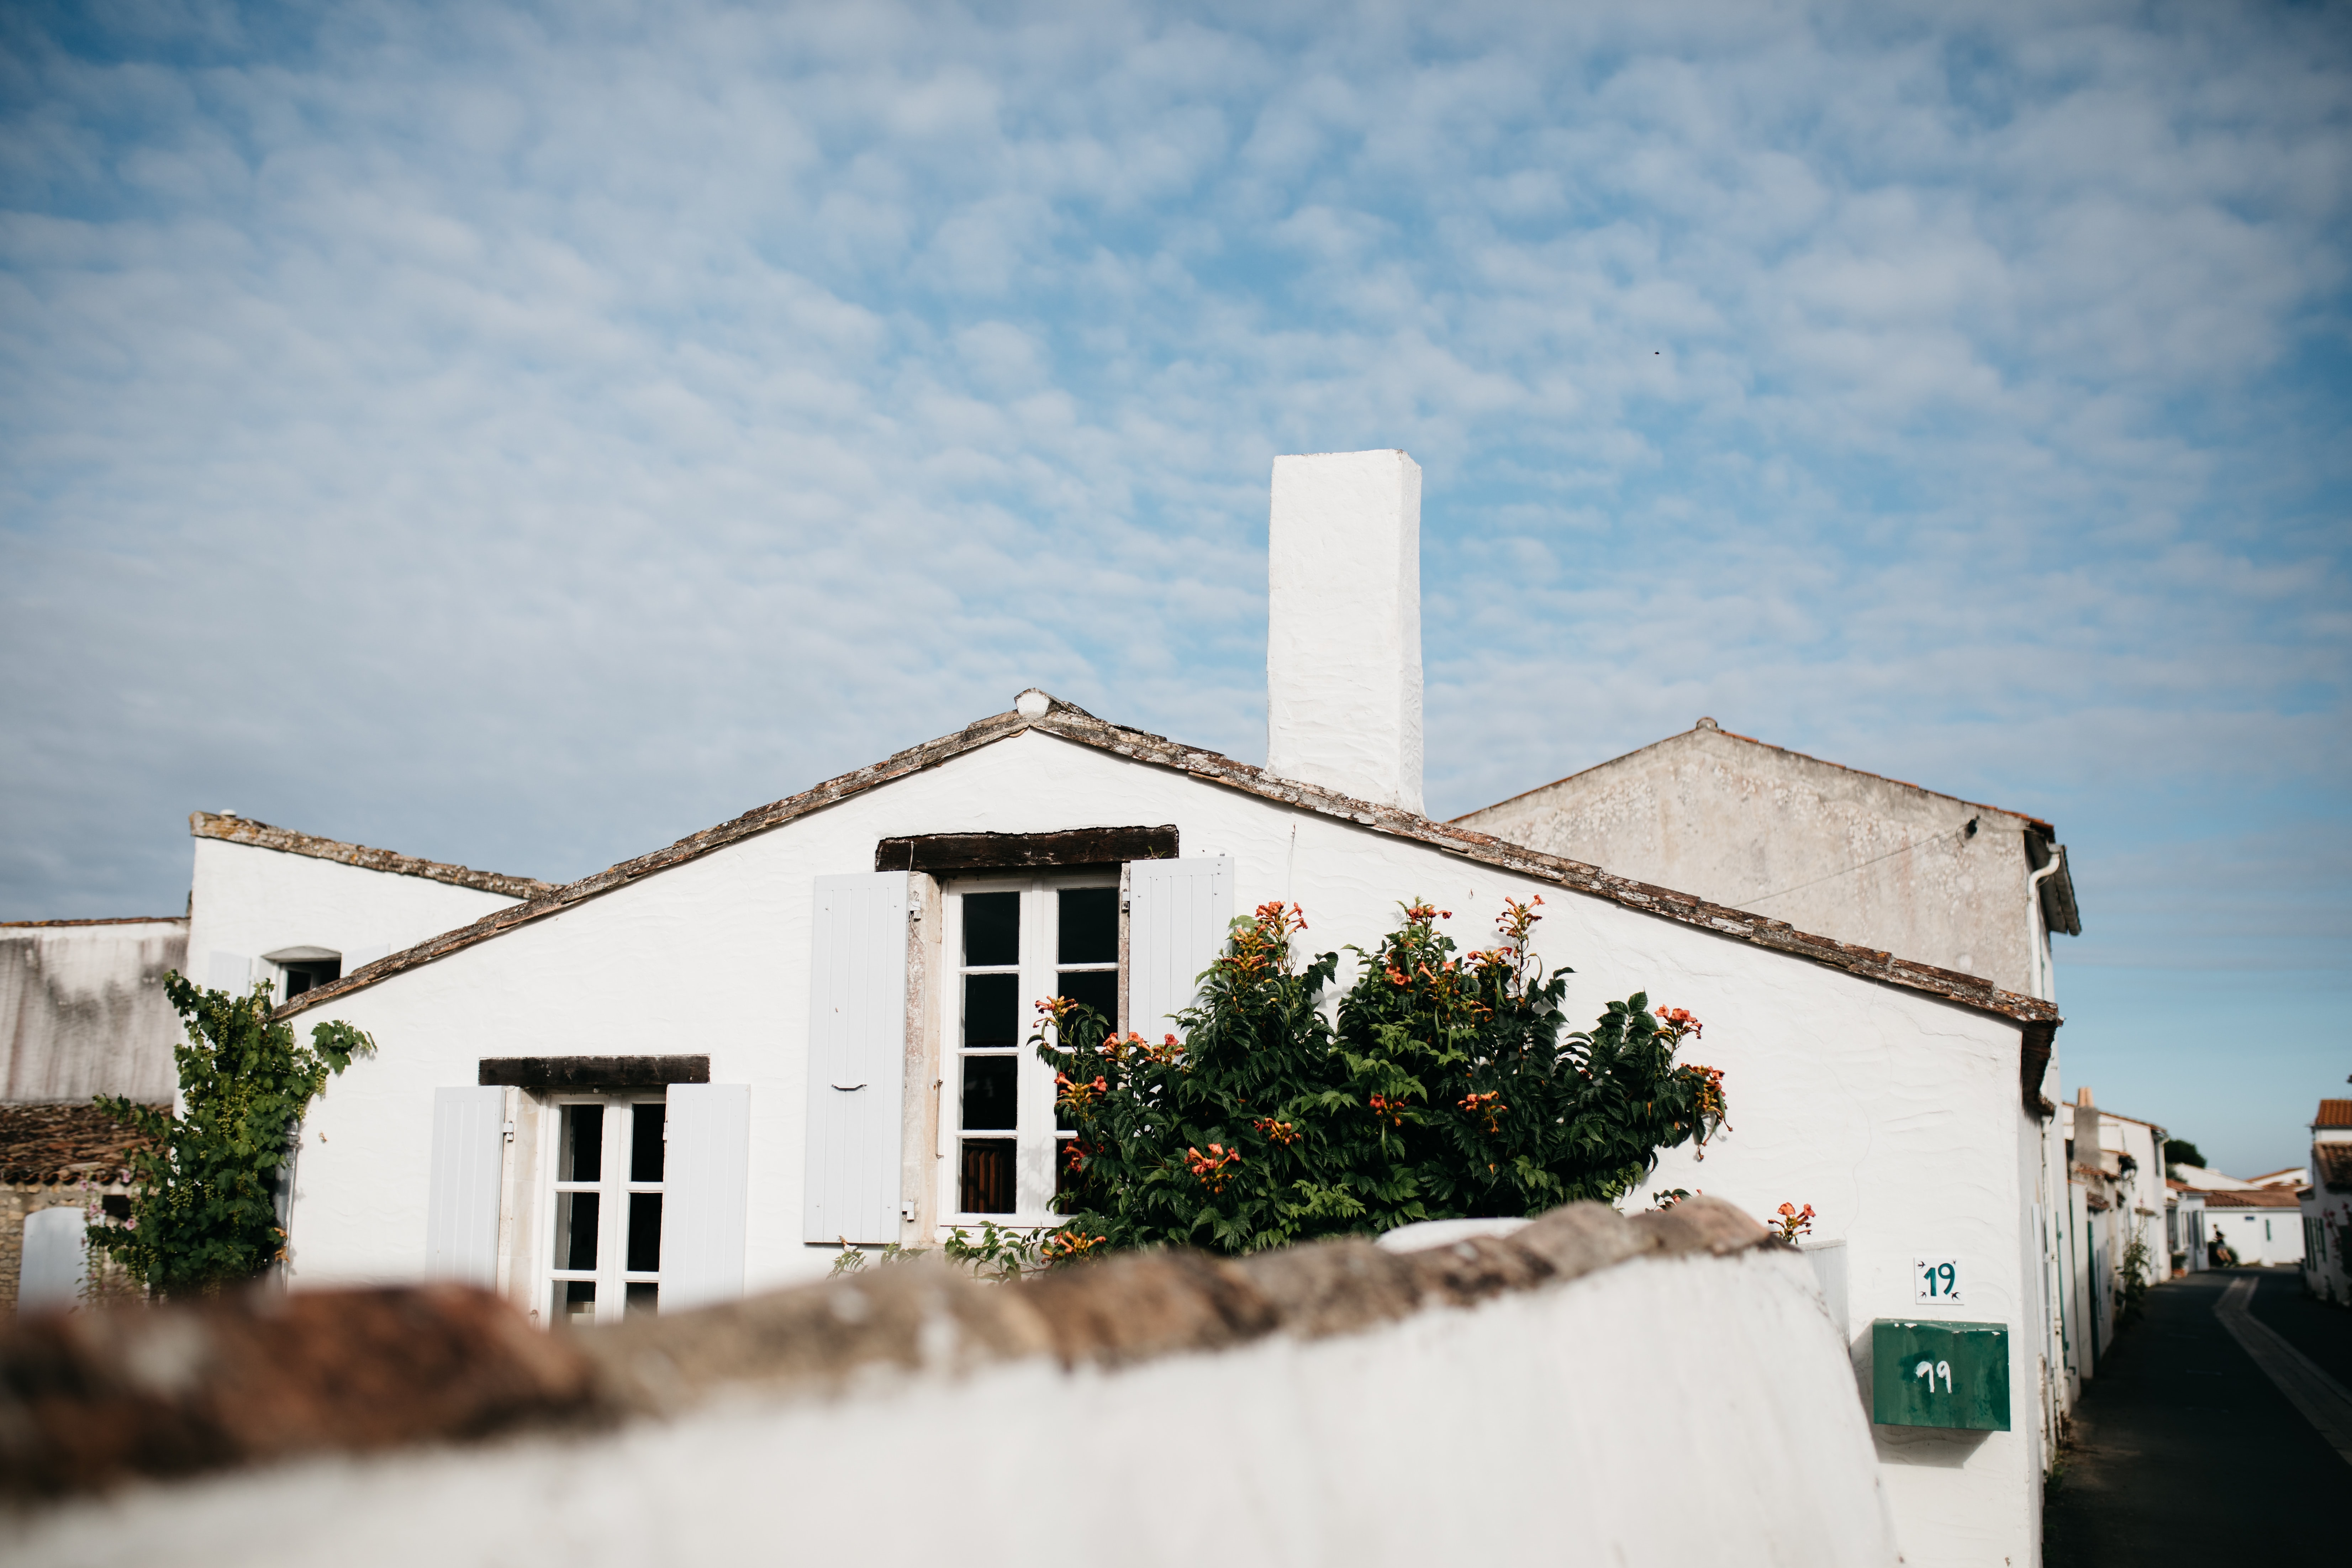 White house in Loix with chimney, windows, and bush in front